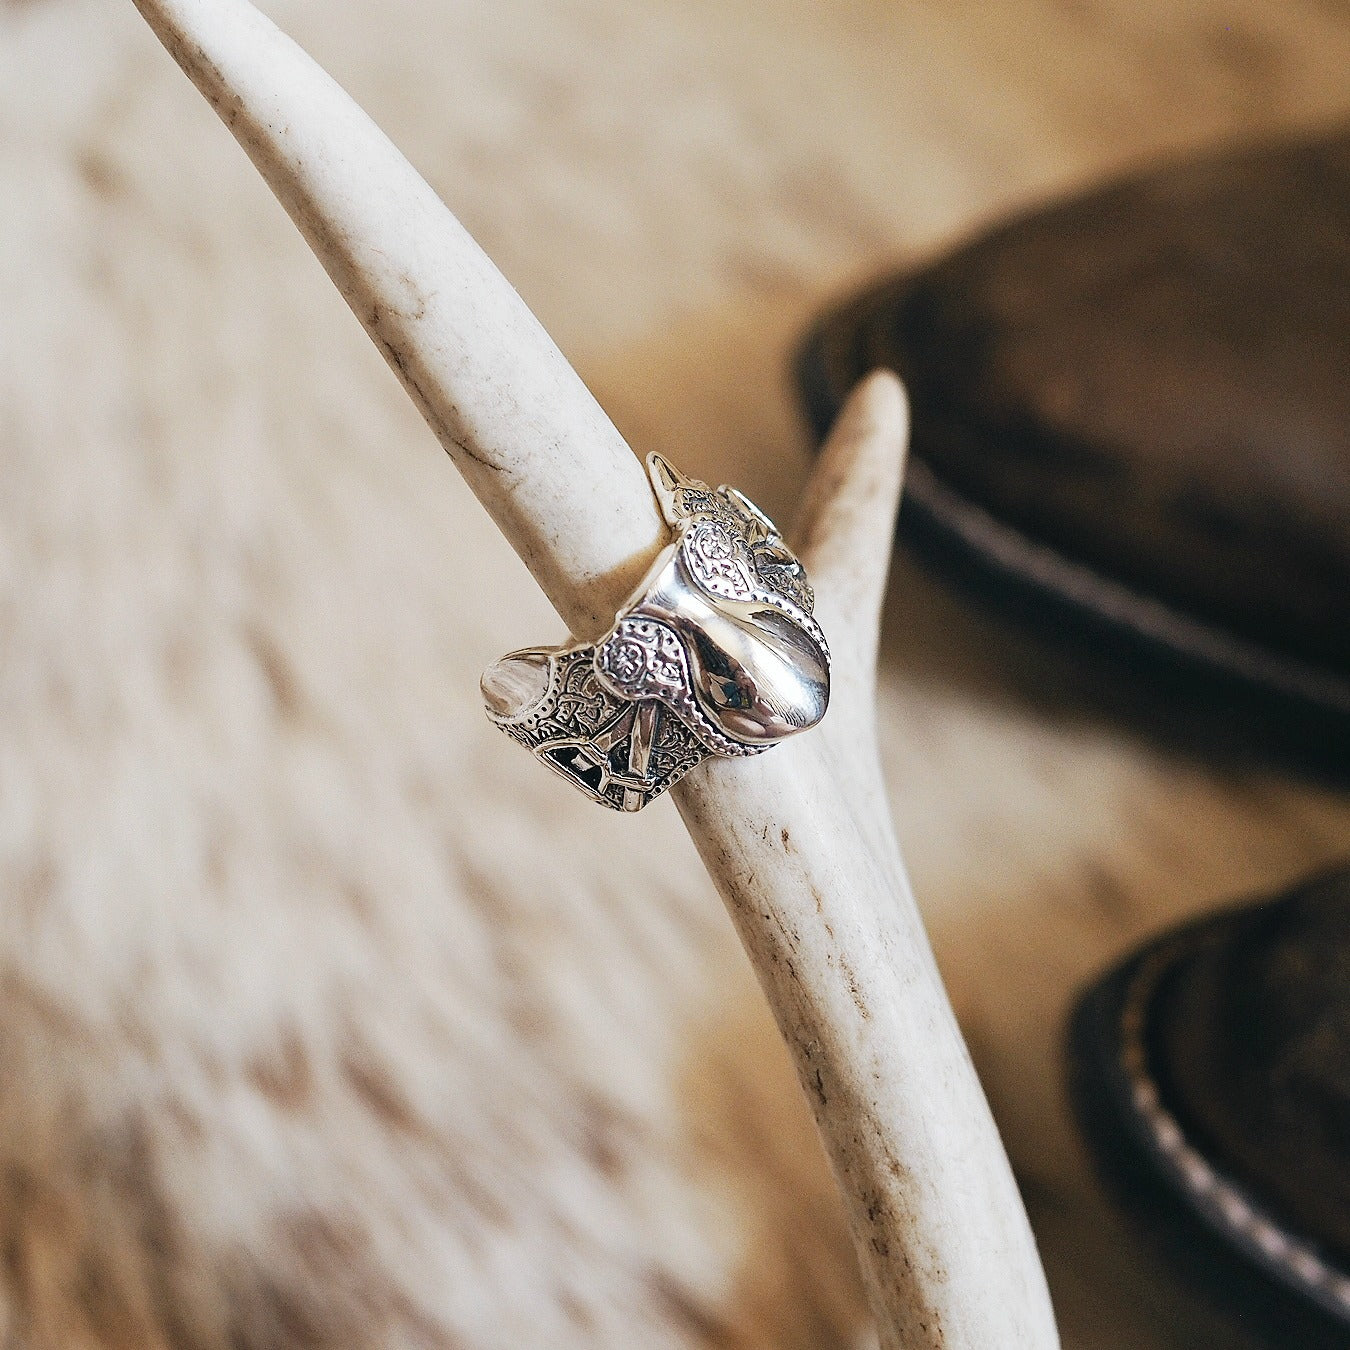 English Saddle Ring